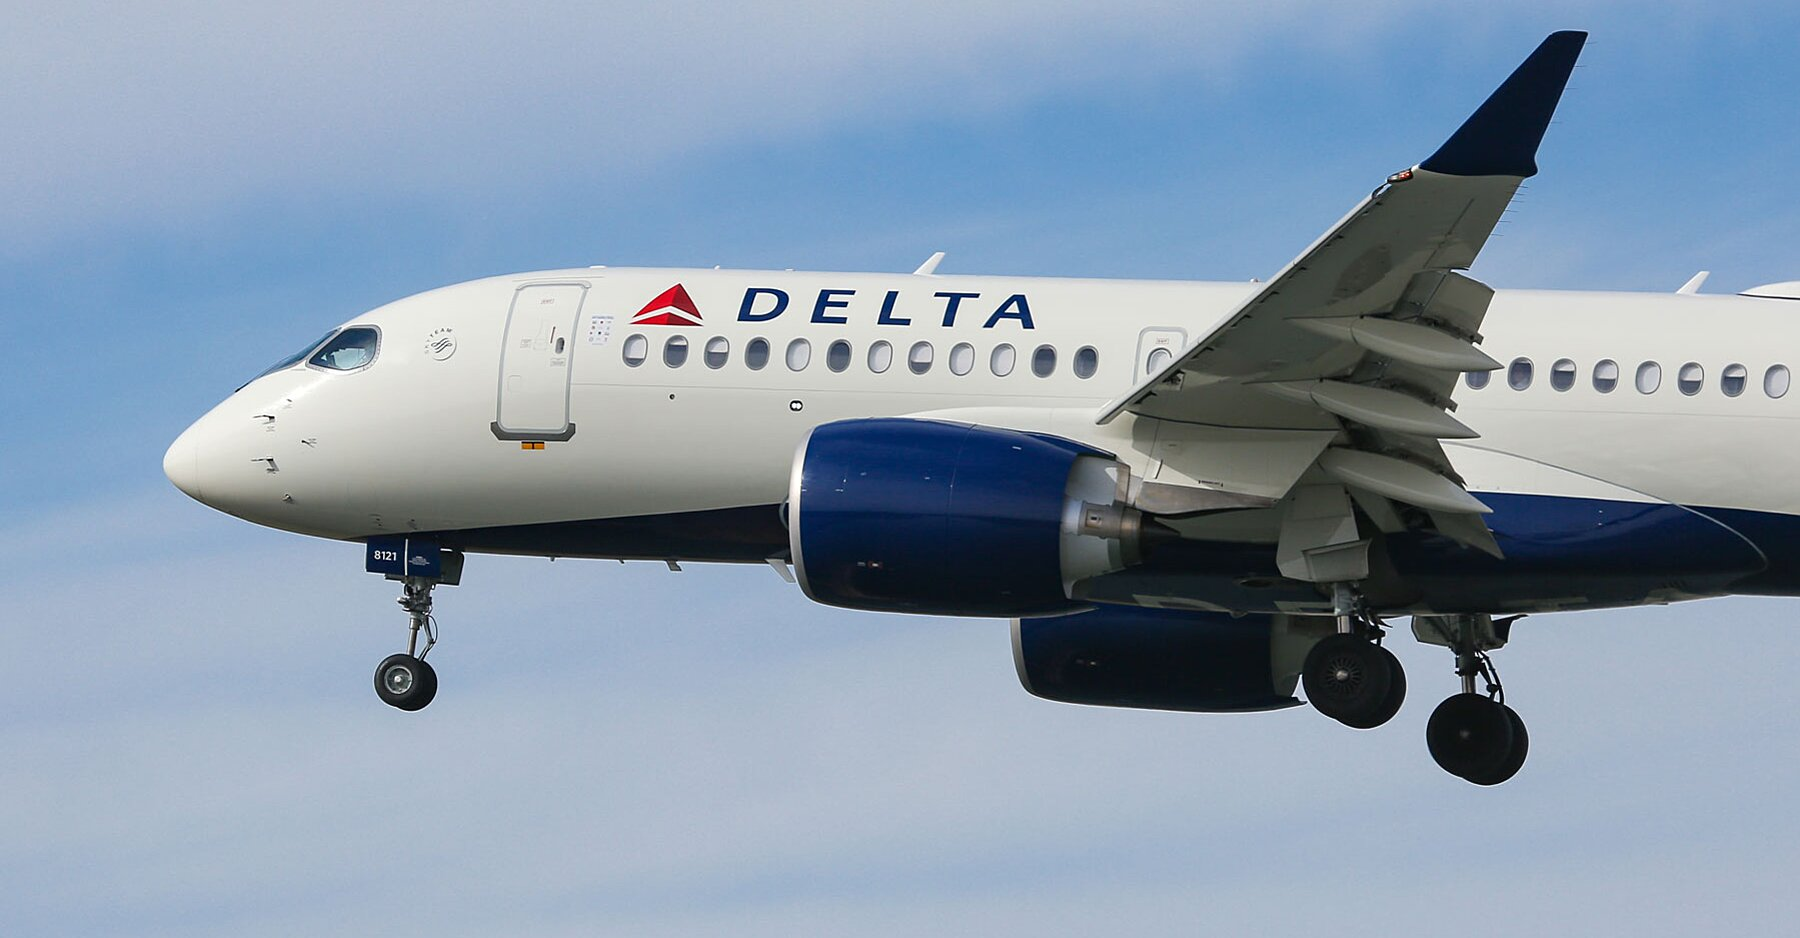 Delta Bans More Than 100 People from Airline for Refusing to Wear a Mask During Flight